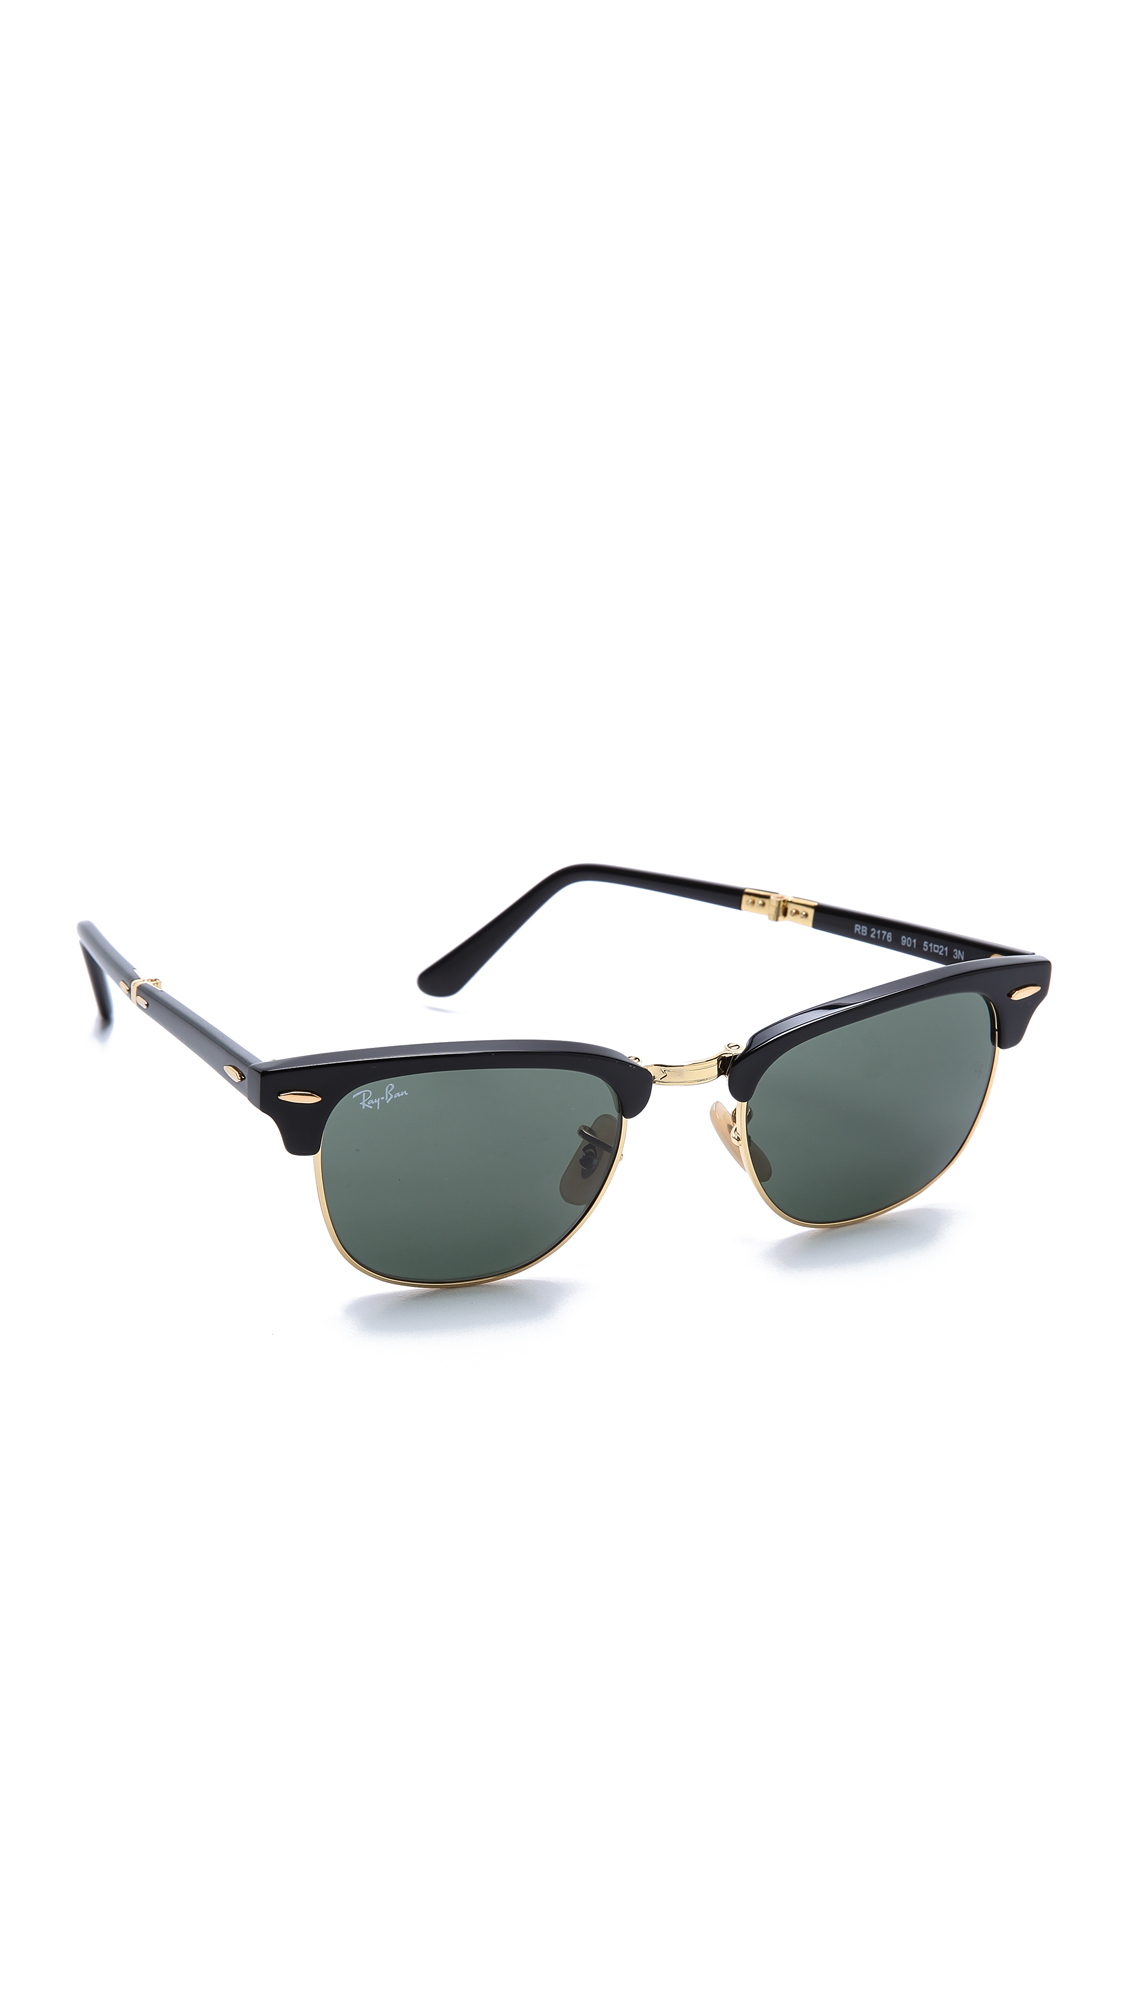 486314b6f2 Ray Ban Clubmaster Crystal Green « Heritage Malta